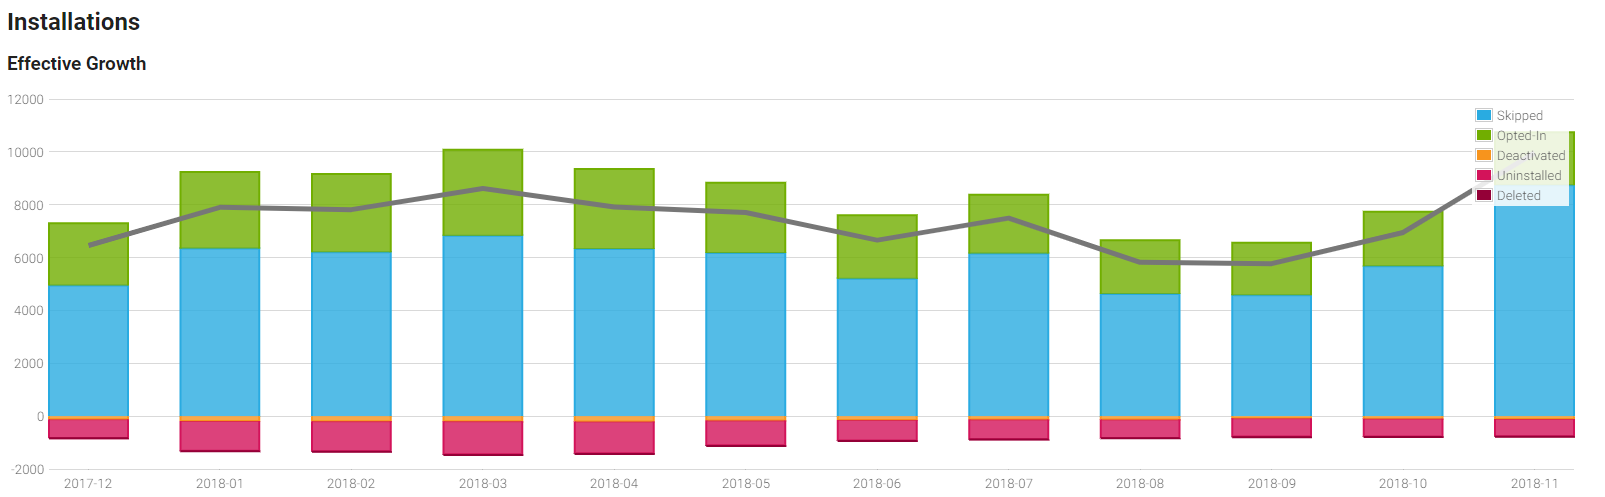 a view of your product's install base Effective Growth graph at Freemius